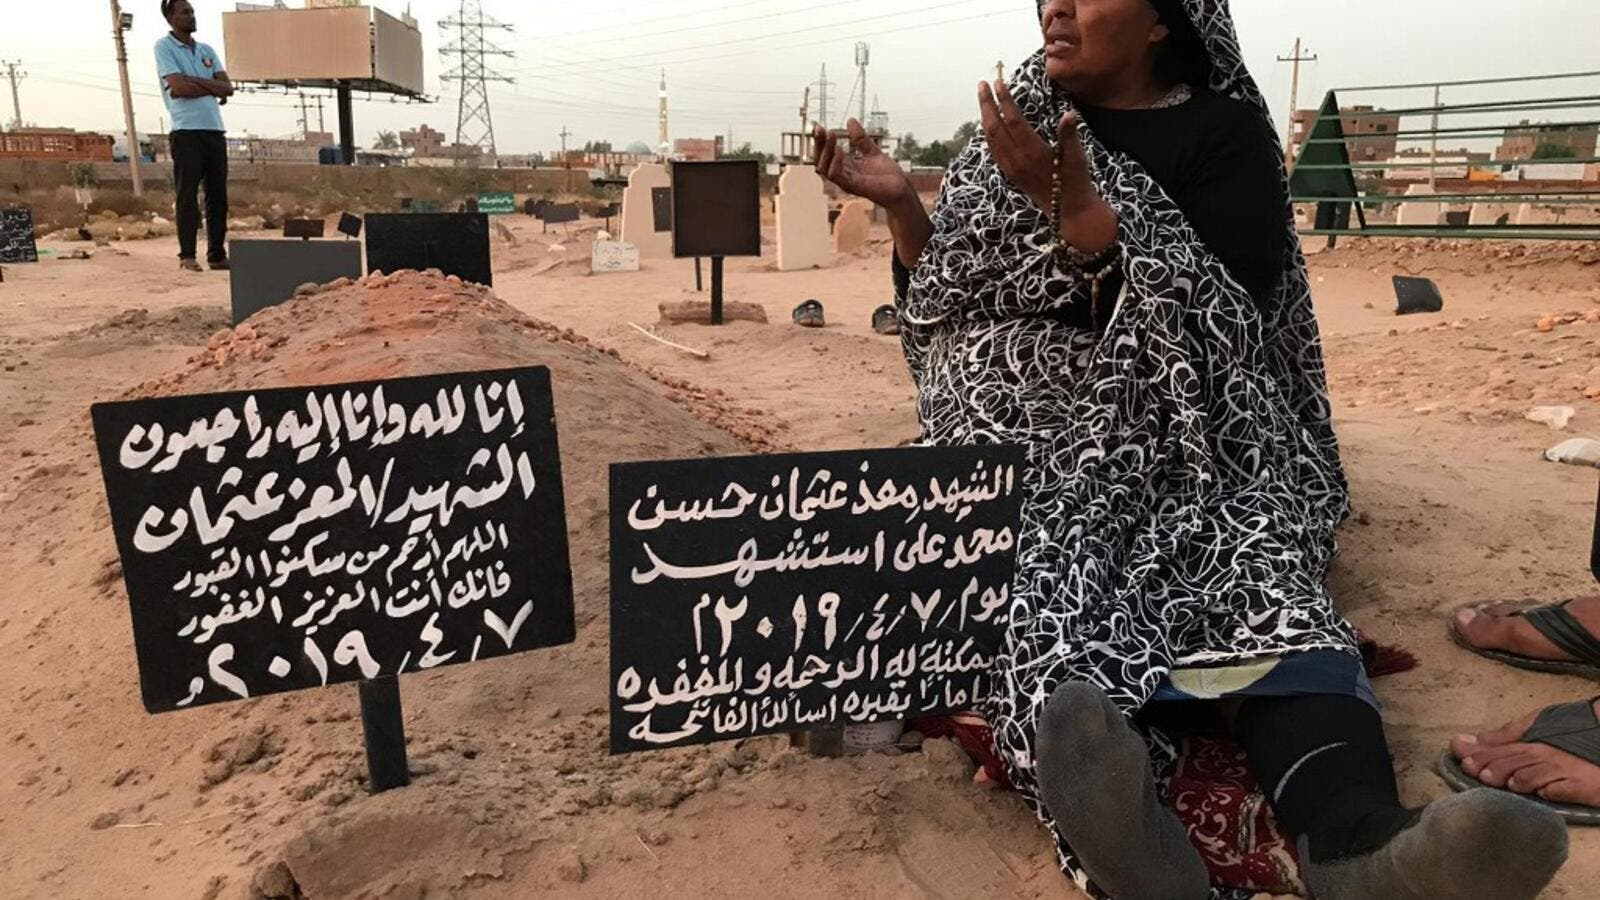 Khadom, the mother of Al-Moez visits the tomb of her son, killed when a bullet pierced the window of his workplace and lodged itself in his heart during an anti-government demonstration in the Sudanese capital Khartoum in April, on July 9, 2019. (AFP/ File Photo)